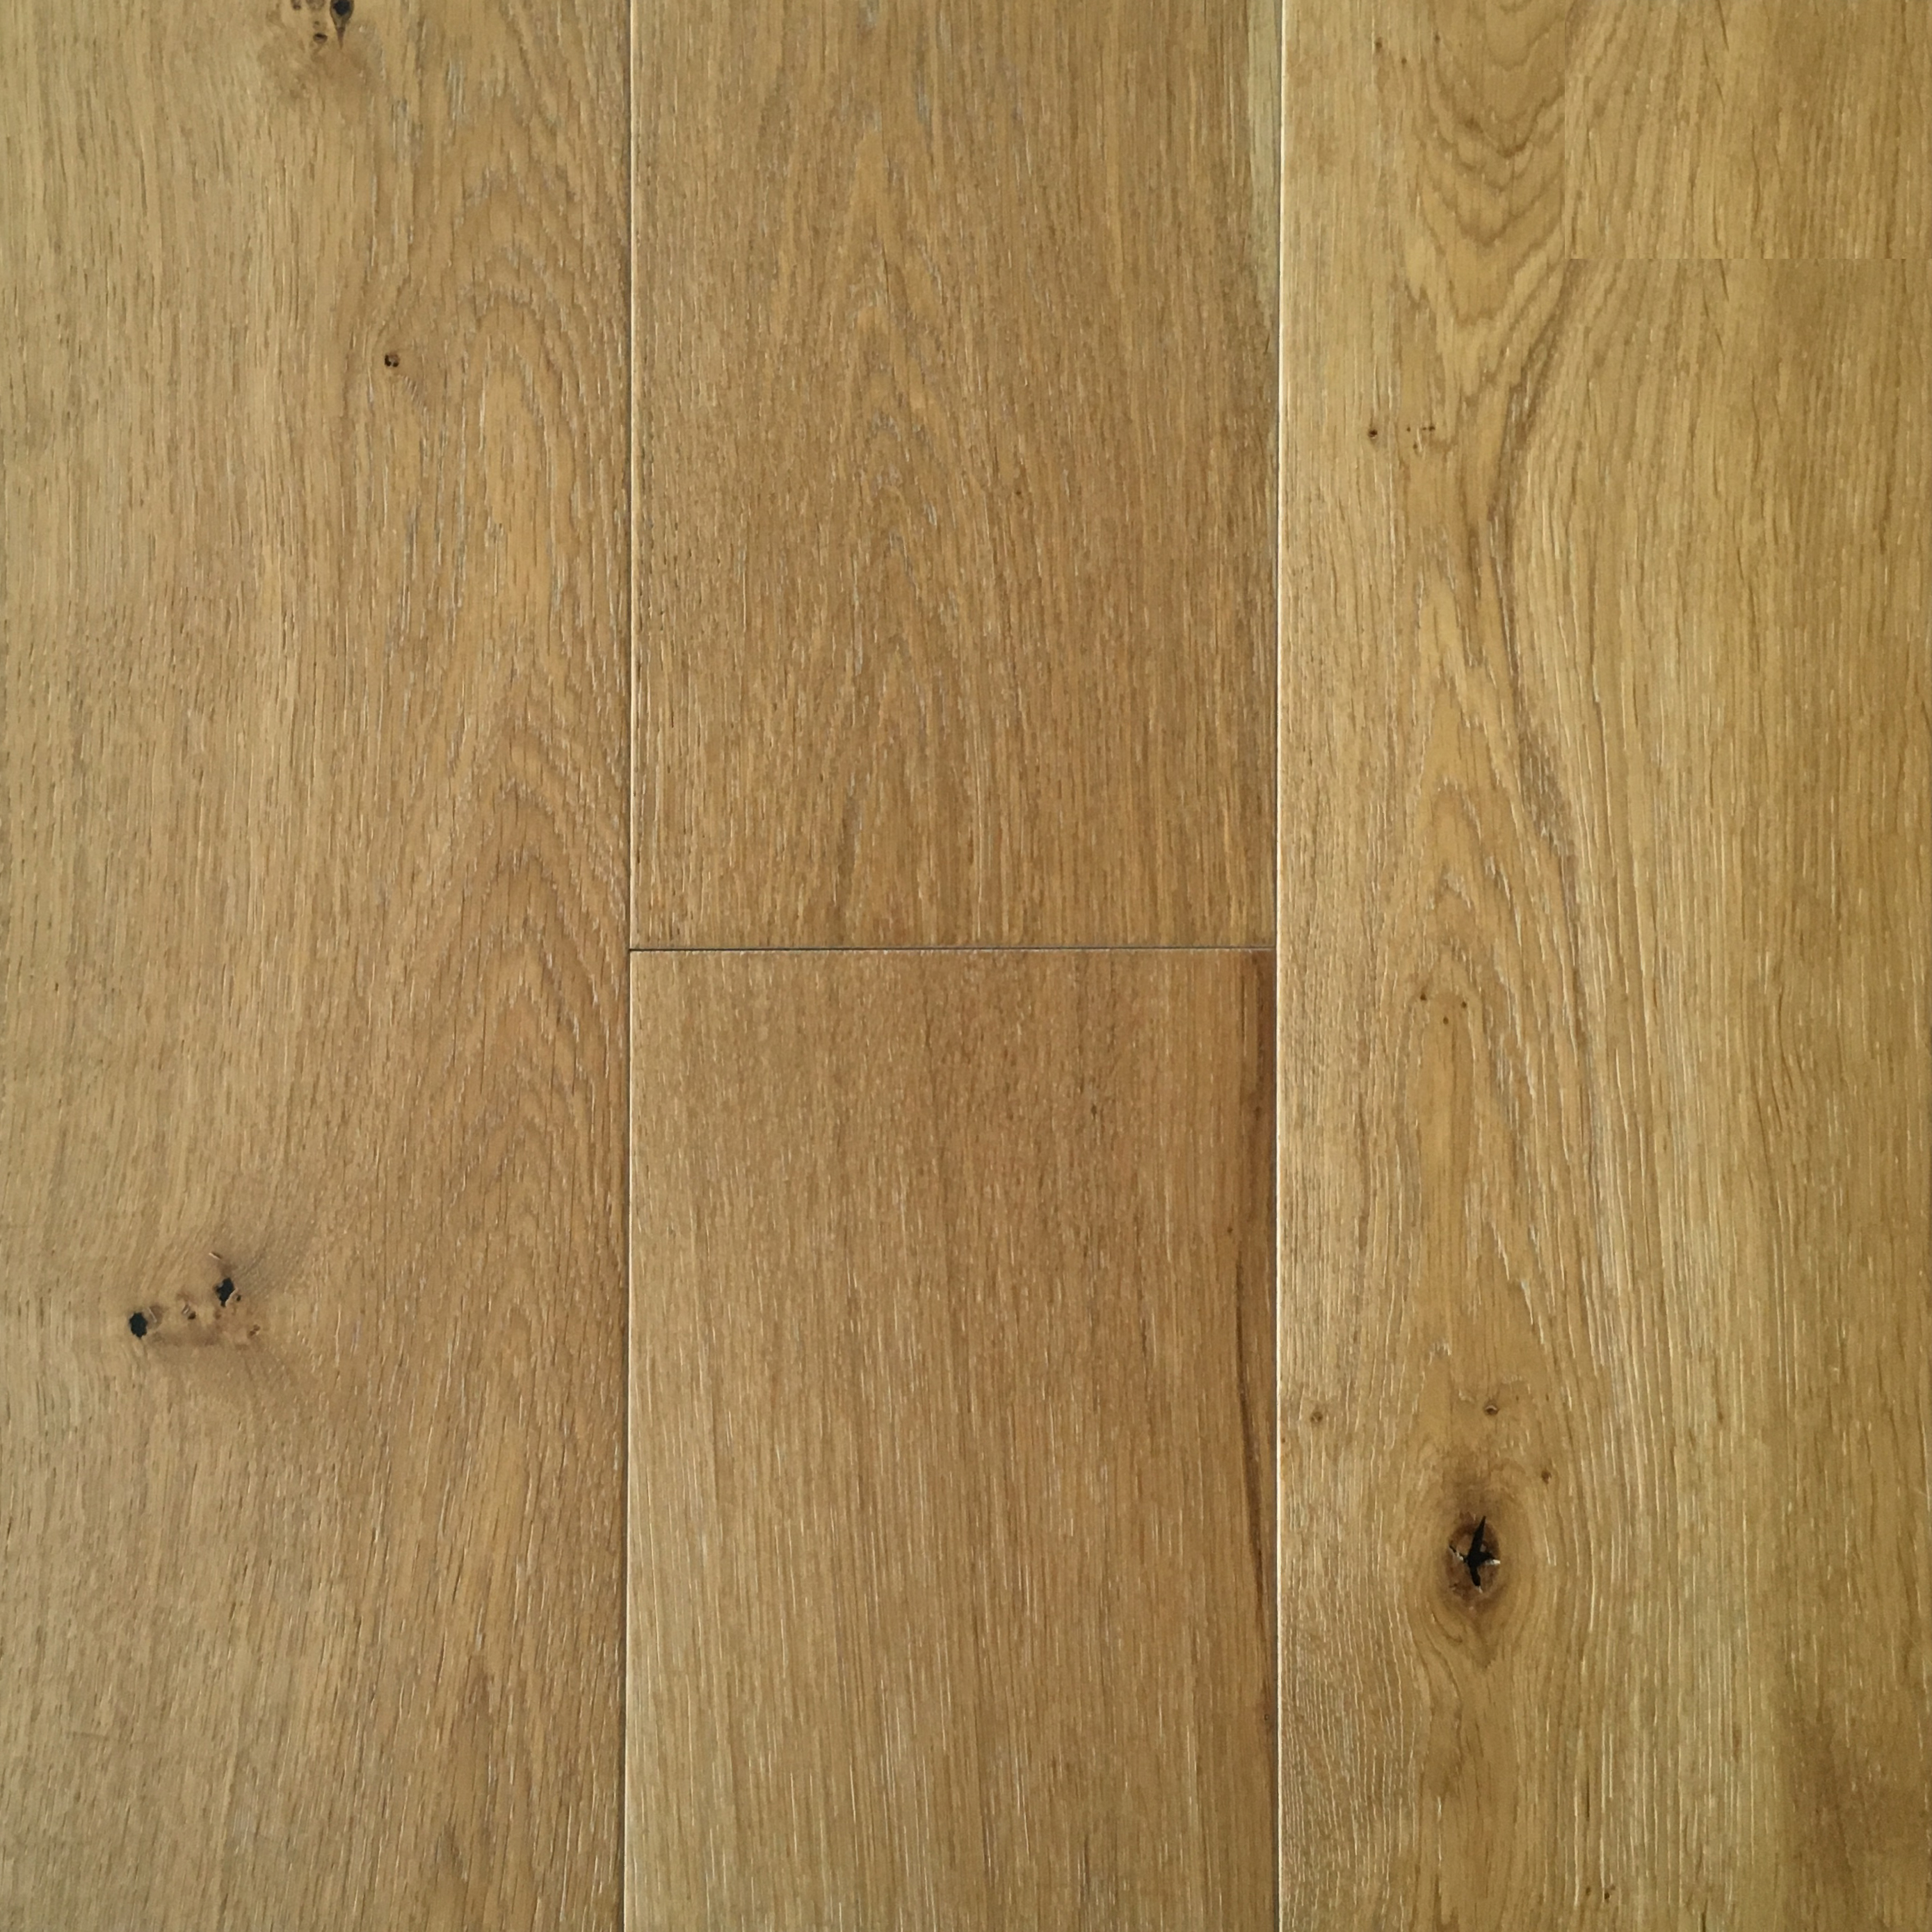 1 engineered 9 european oak wear layer 6mm k006 palomar for Engineered wood floor 6mm